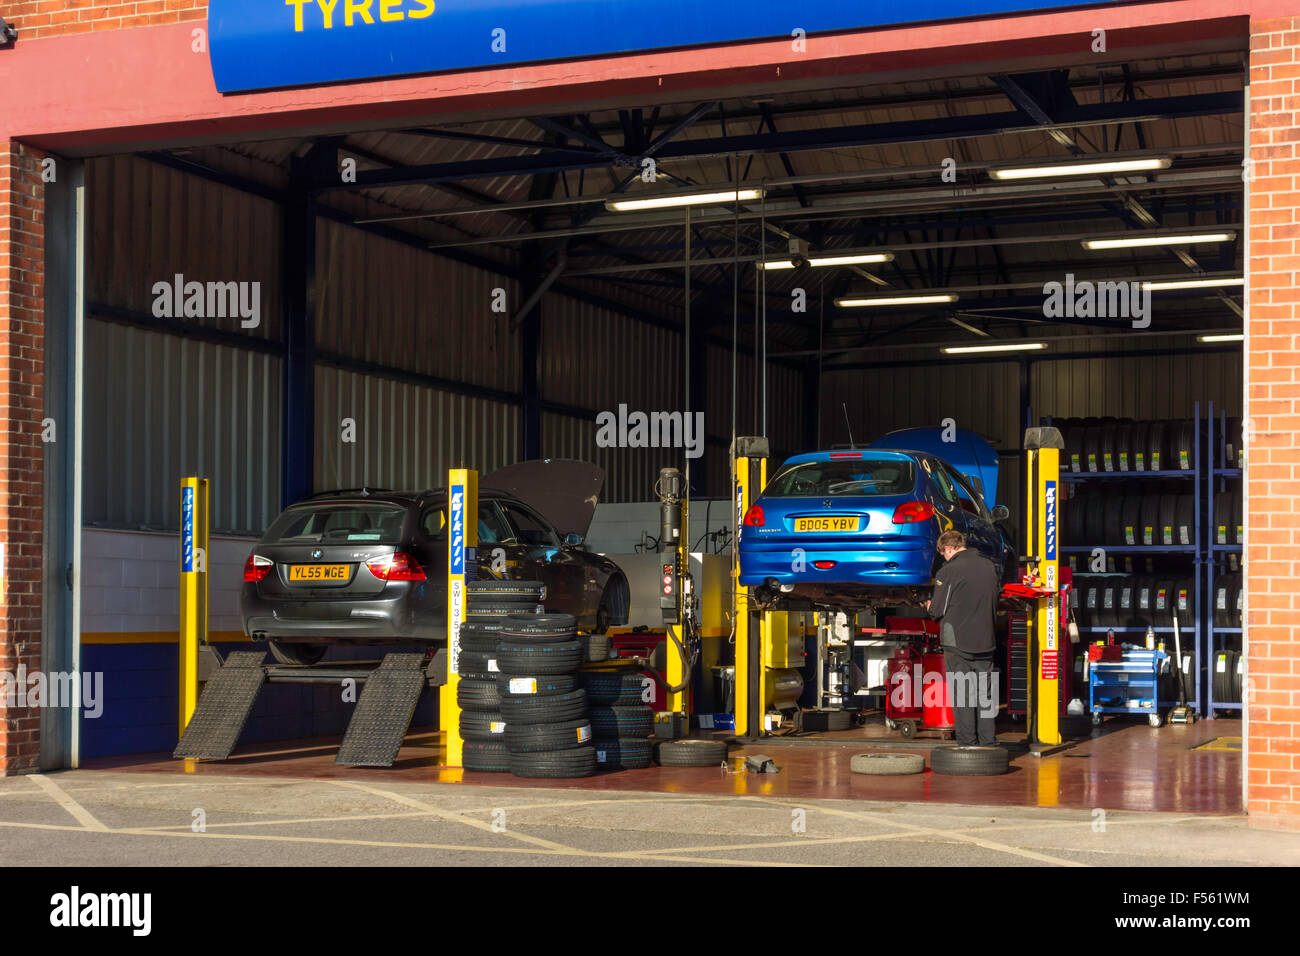 Technician working at a Kwik Fit motor vehicle tyre and exhaust repair and replacement facility - Stock Image